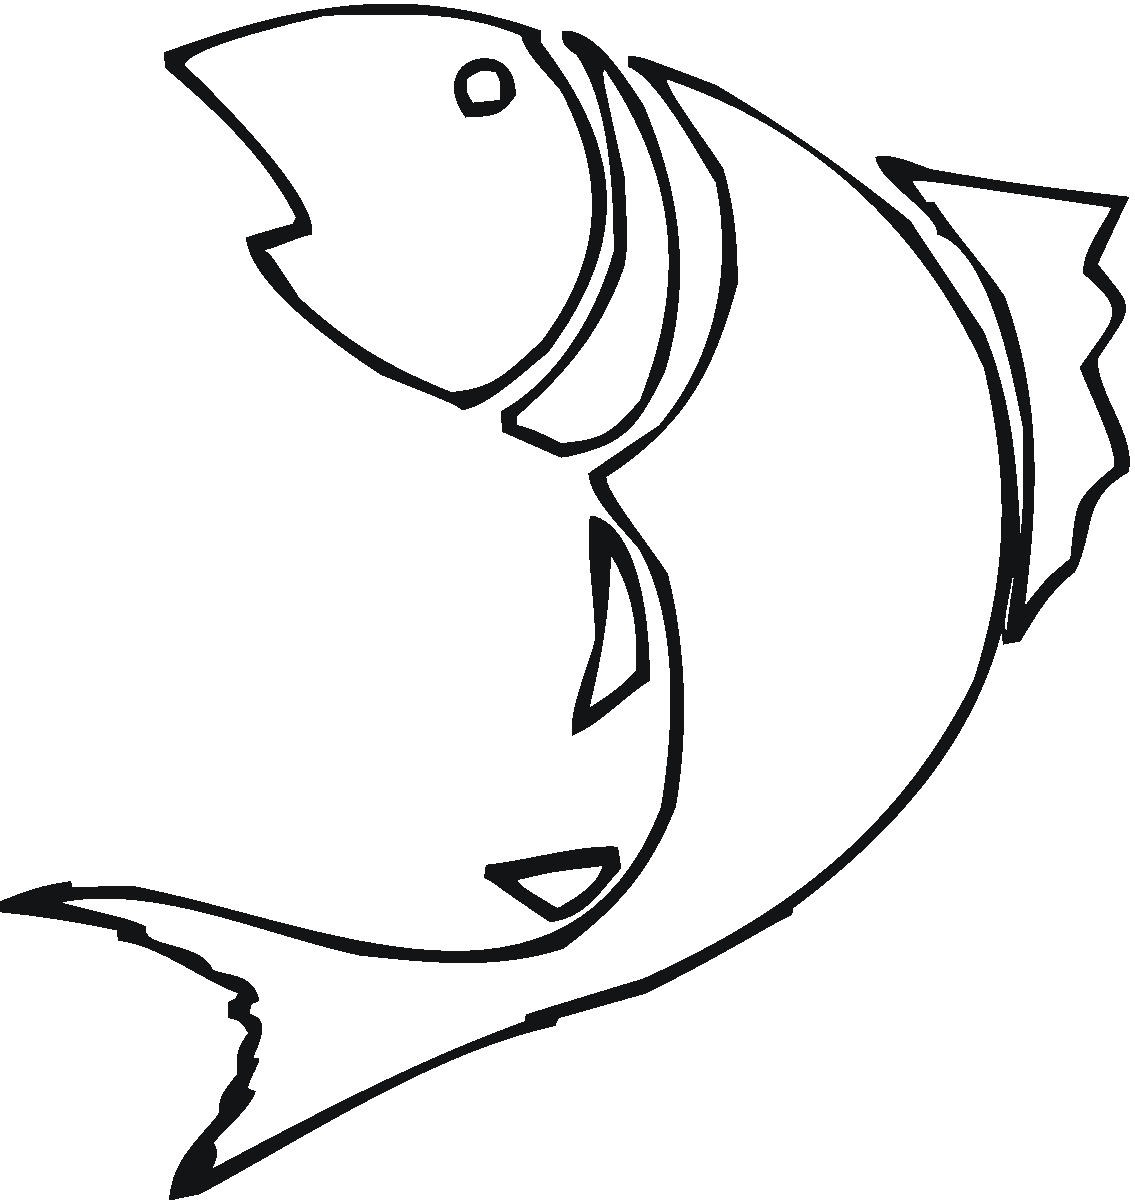 Black and white fish drawing clipart best for Best white fish